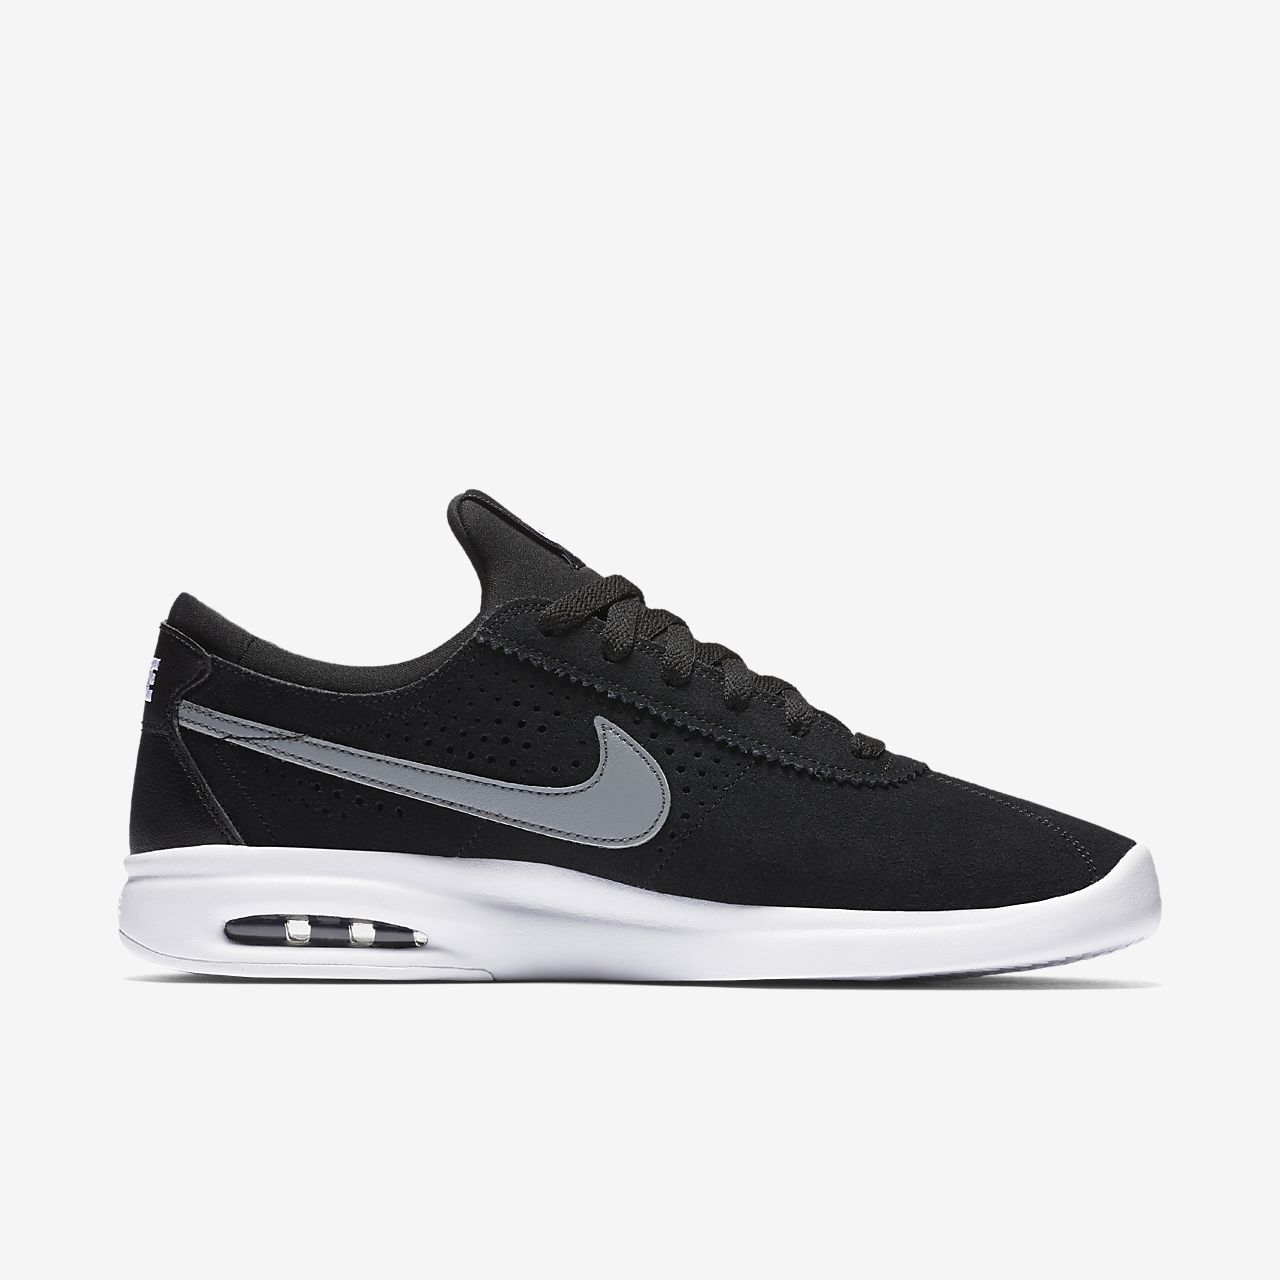 low priced 552f0 f7bbb ... Chaussure de skateboard Nike SB Air Max Bruin Vapor pour Homme